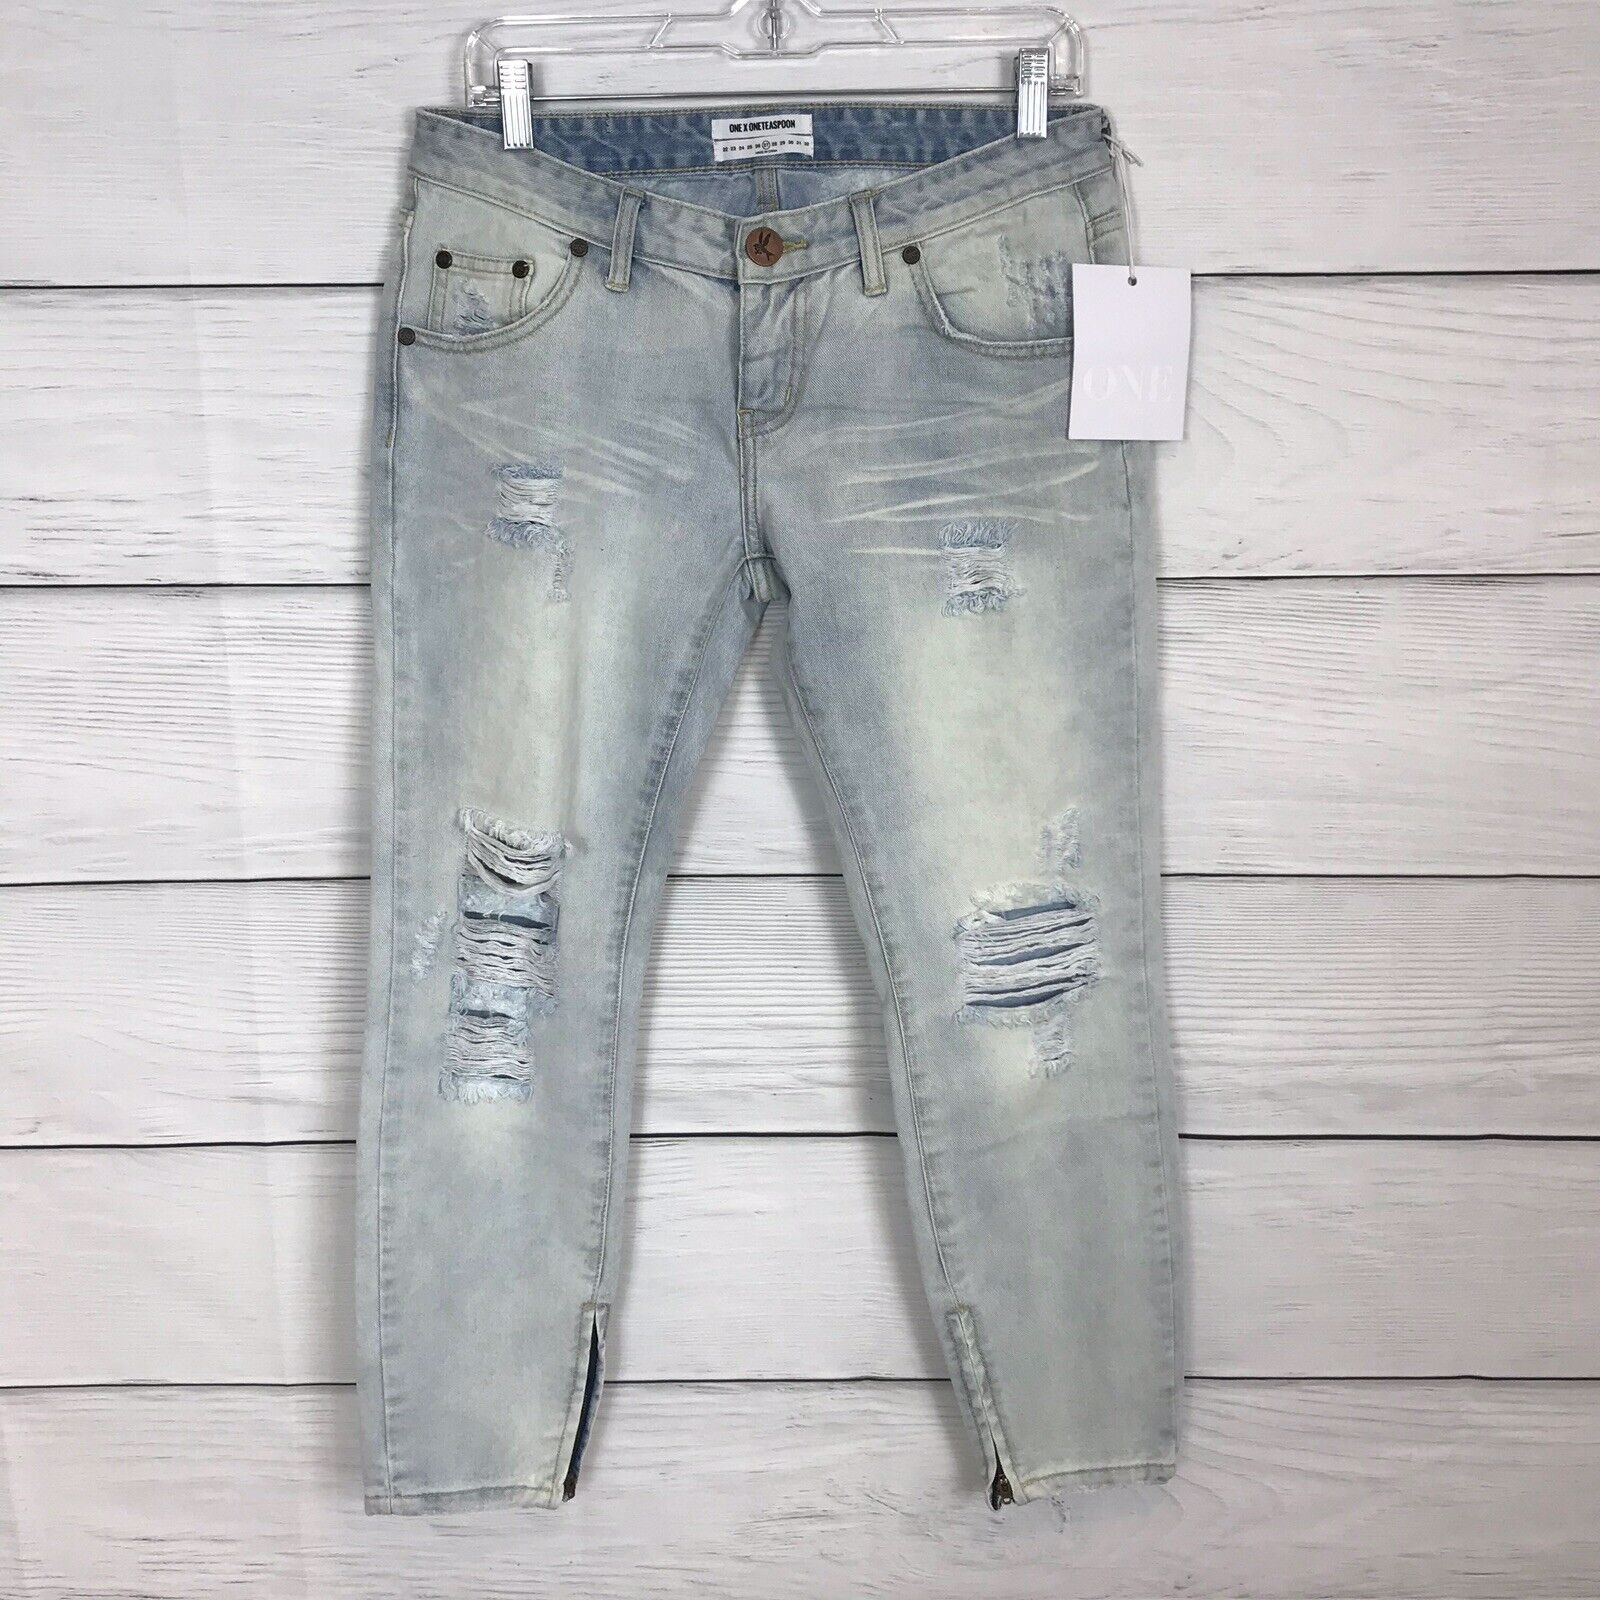 New One Teaspoon Aspen Freebirds Jeans Cropped Distressed Light Wash Sz 27